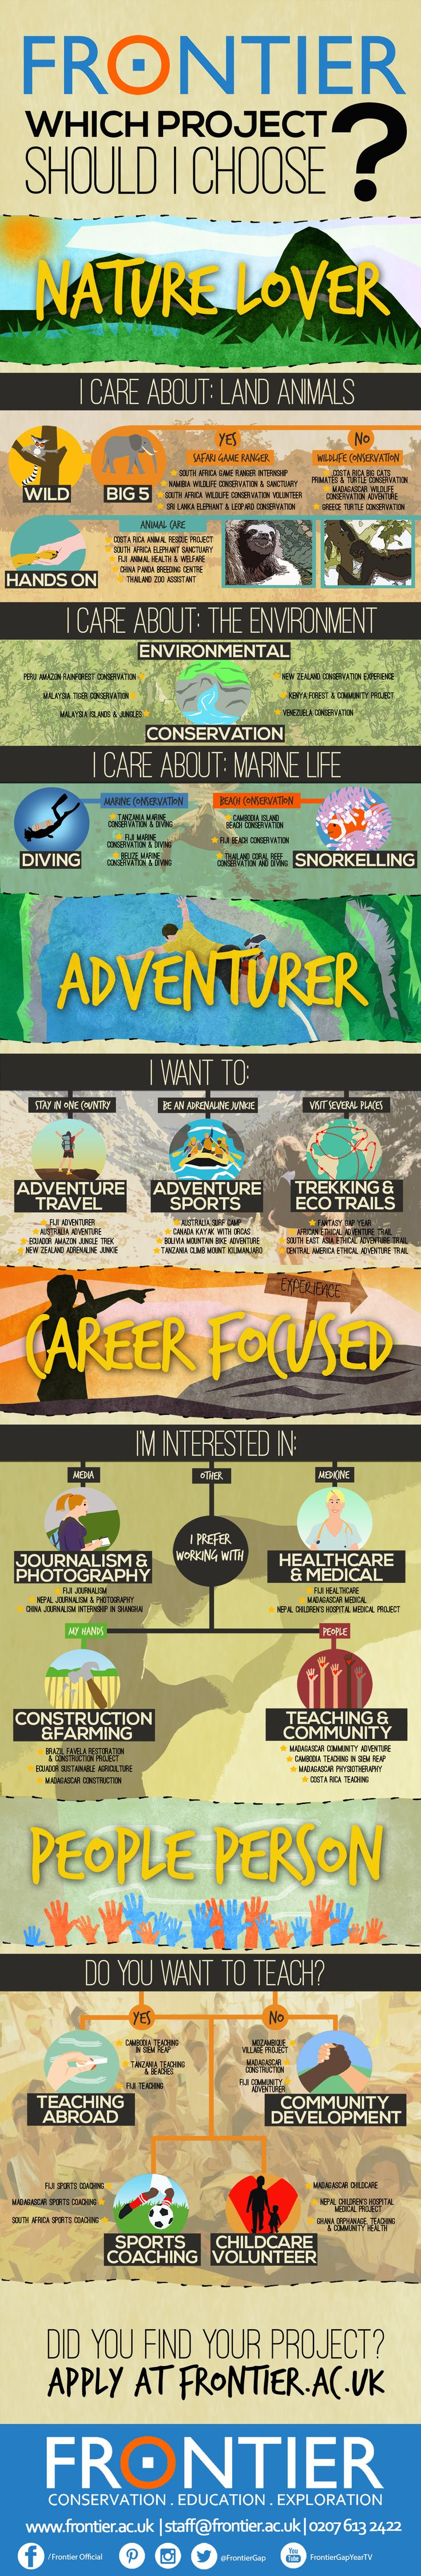 Infographic Volunteer Abroad Guide: Which project should I choose? | www.frontiergap.com | Are you interested in volunteering, but overwhelmed by all the different opportunities? No need to worry any longer - we have created a special epic guide for you!  | #animalcare, #career, #guide, #infographic, #internships, #projectsabroad, #teachingabroad, #travel, #volunteer, #volunteerabroad, #volunteering, #wildlifeconservation